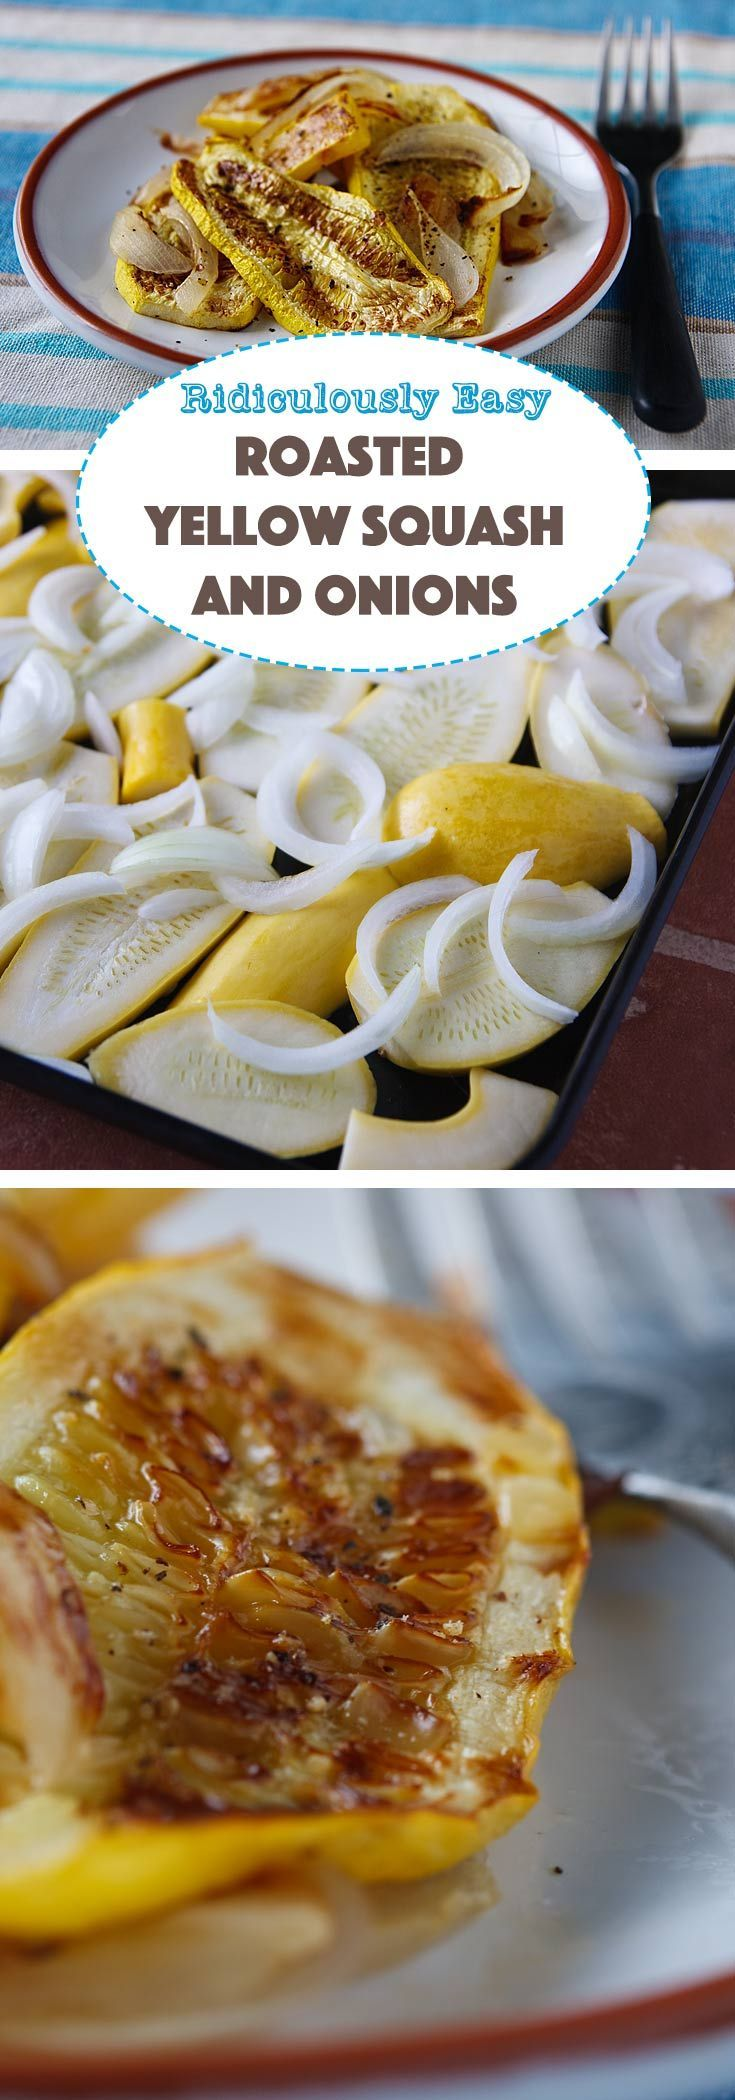 Roasted Yellow Squash and Onions